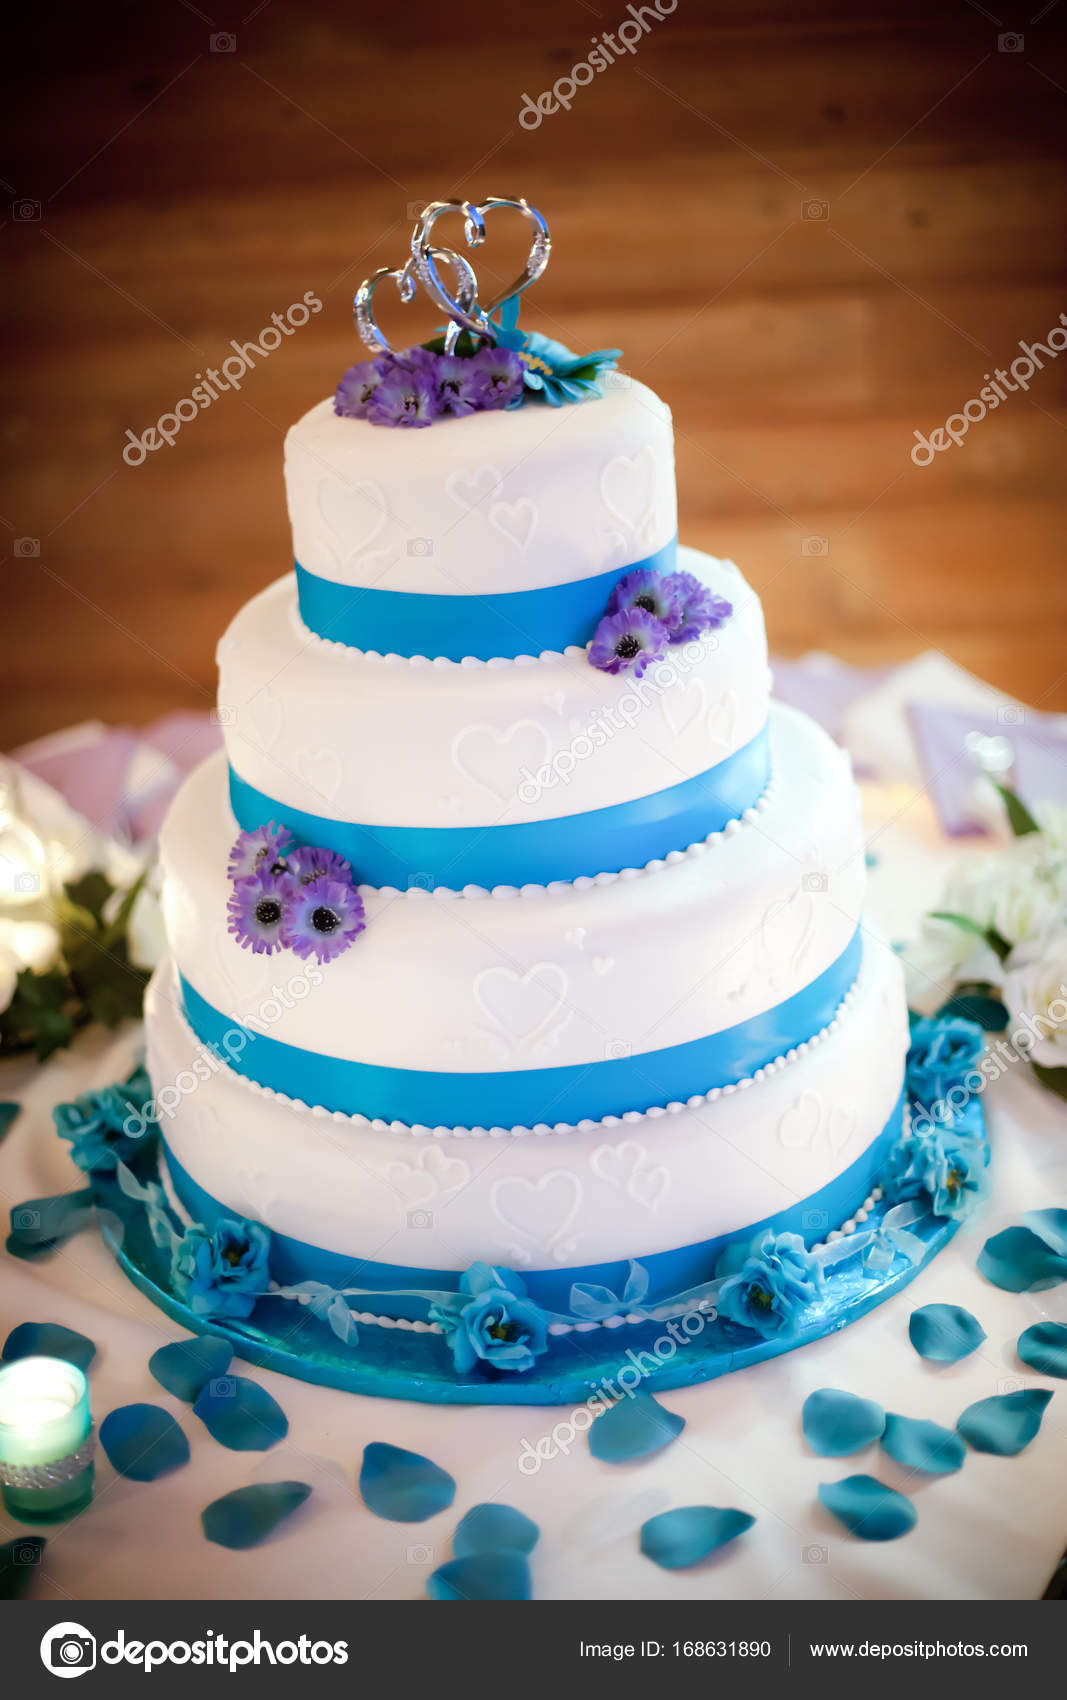 Colorful blue and purple wedding cake with silver wedding topper ...